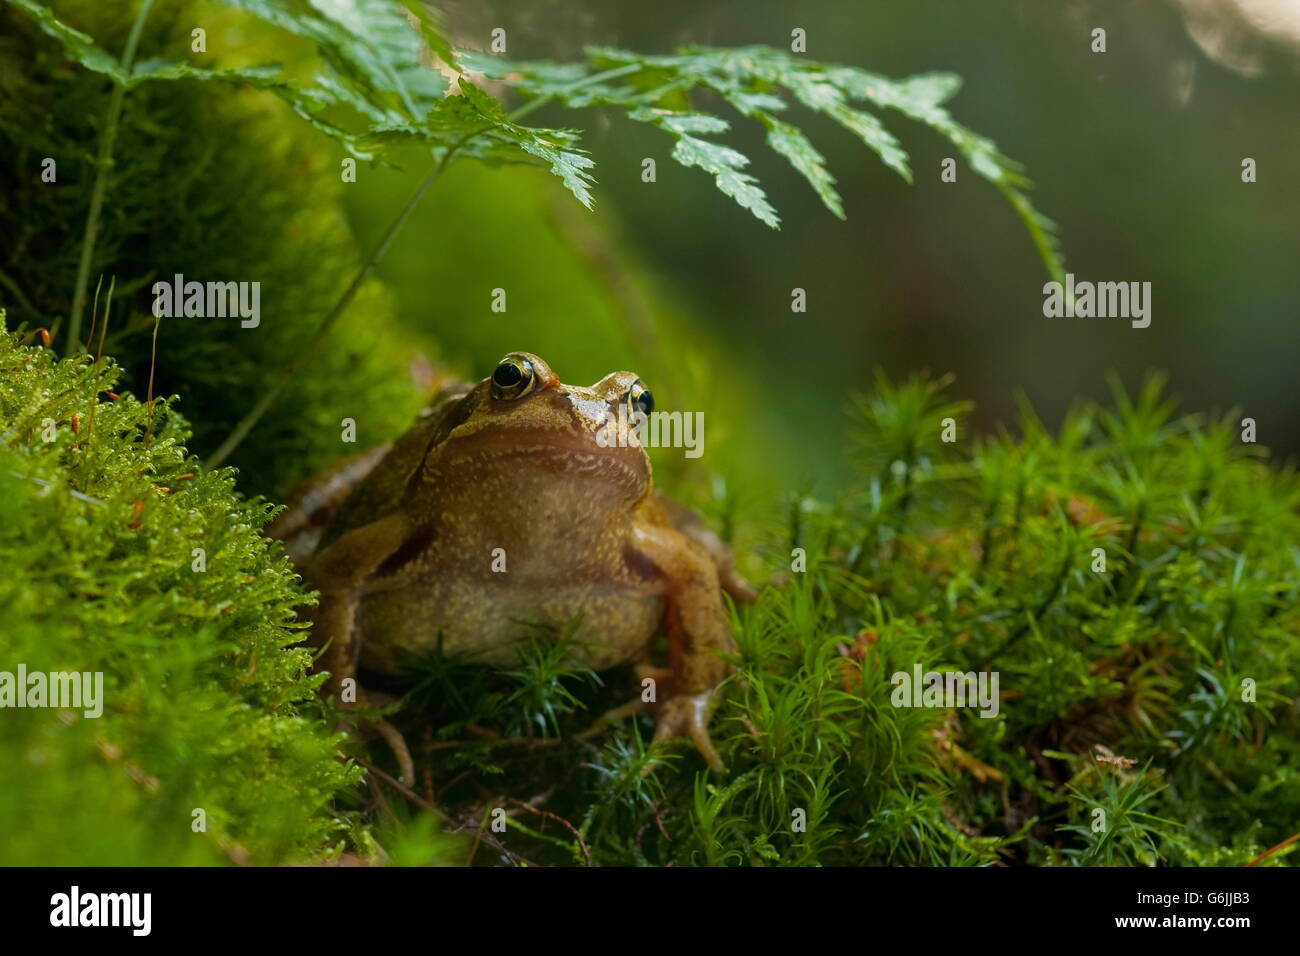 common frog, Germany / (Rana temporaria) - Stock Image